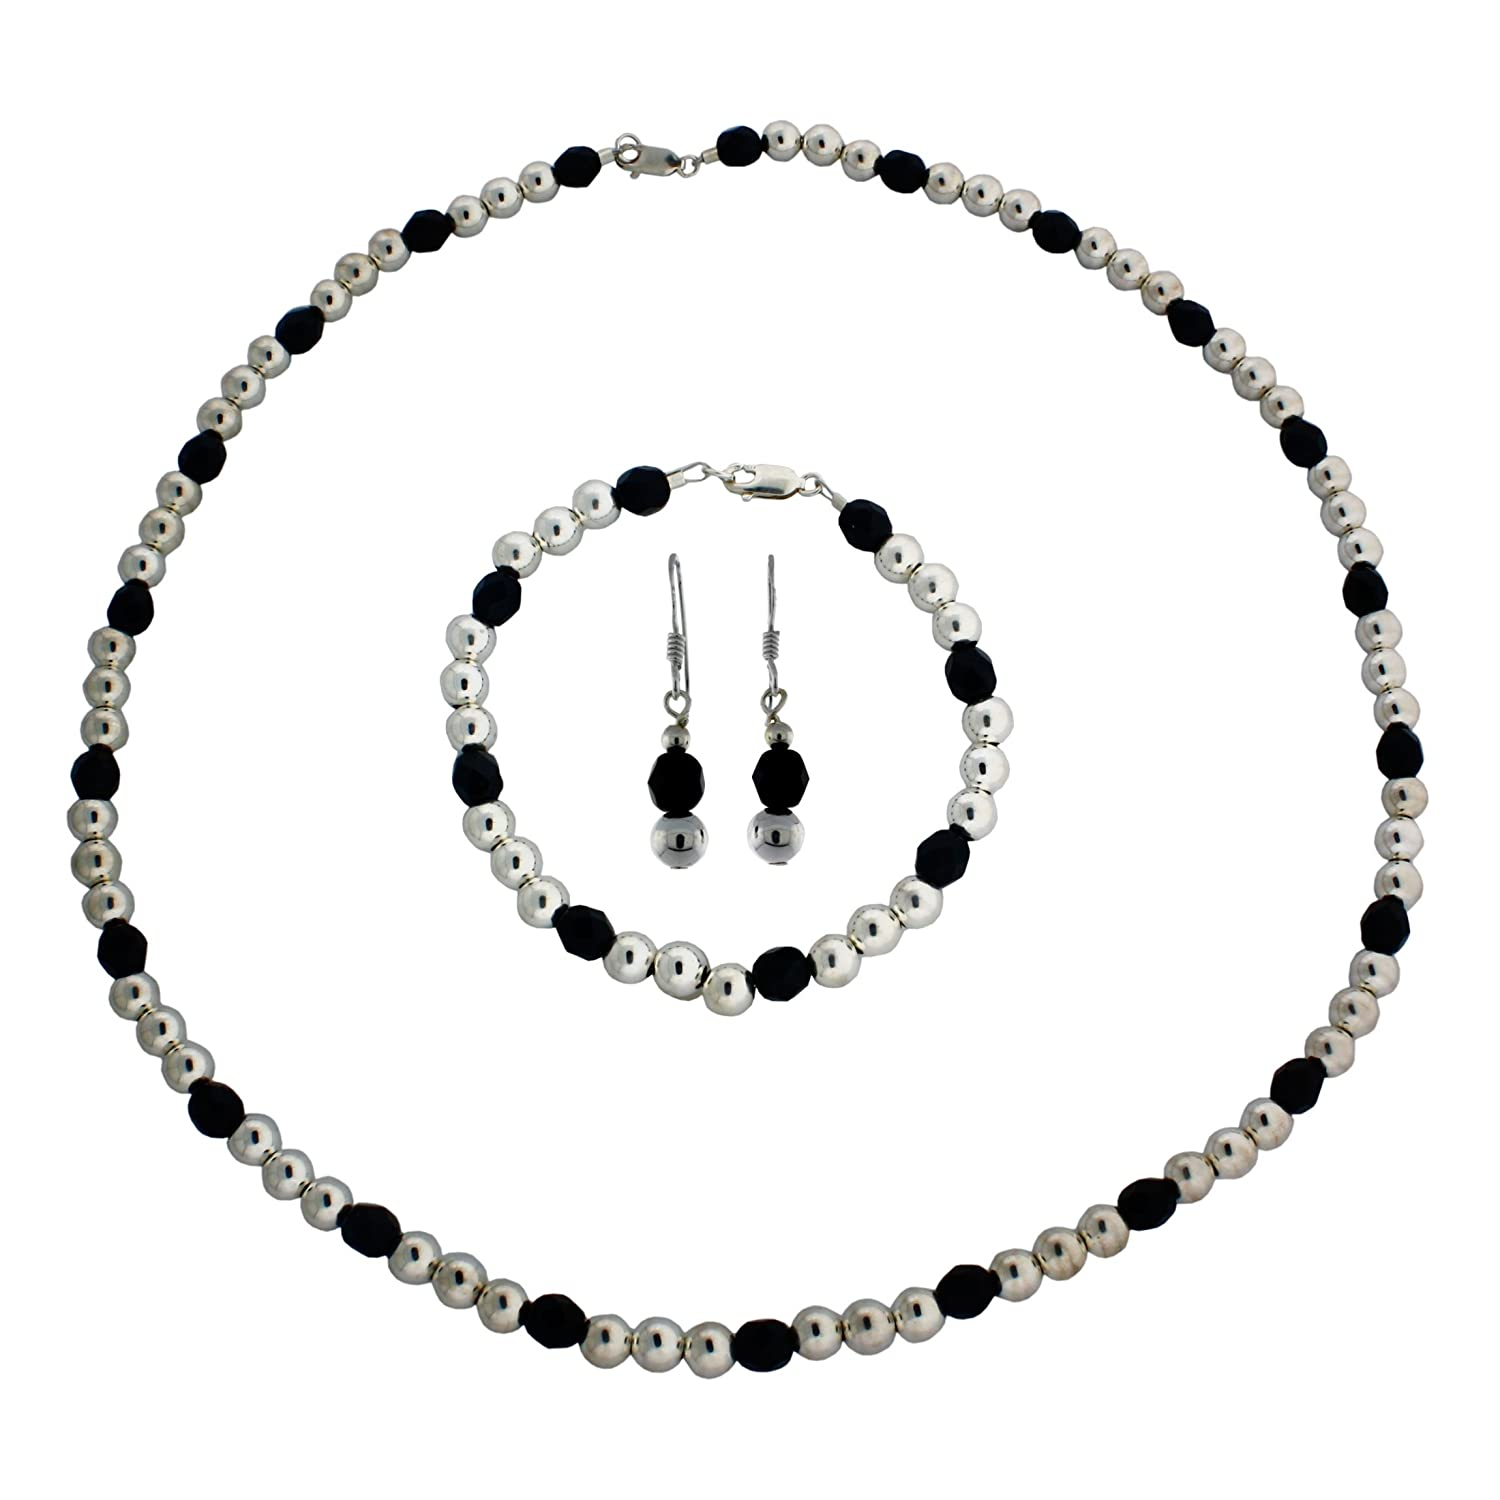 7 1//2 Bracelet and Earring Set Sterling Silver 6mm Faceted Crystal 18 Necklace